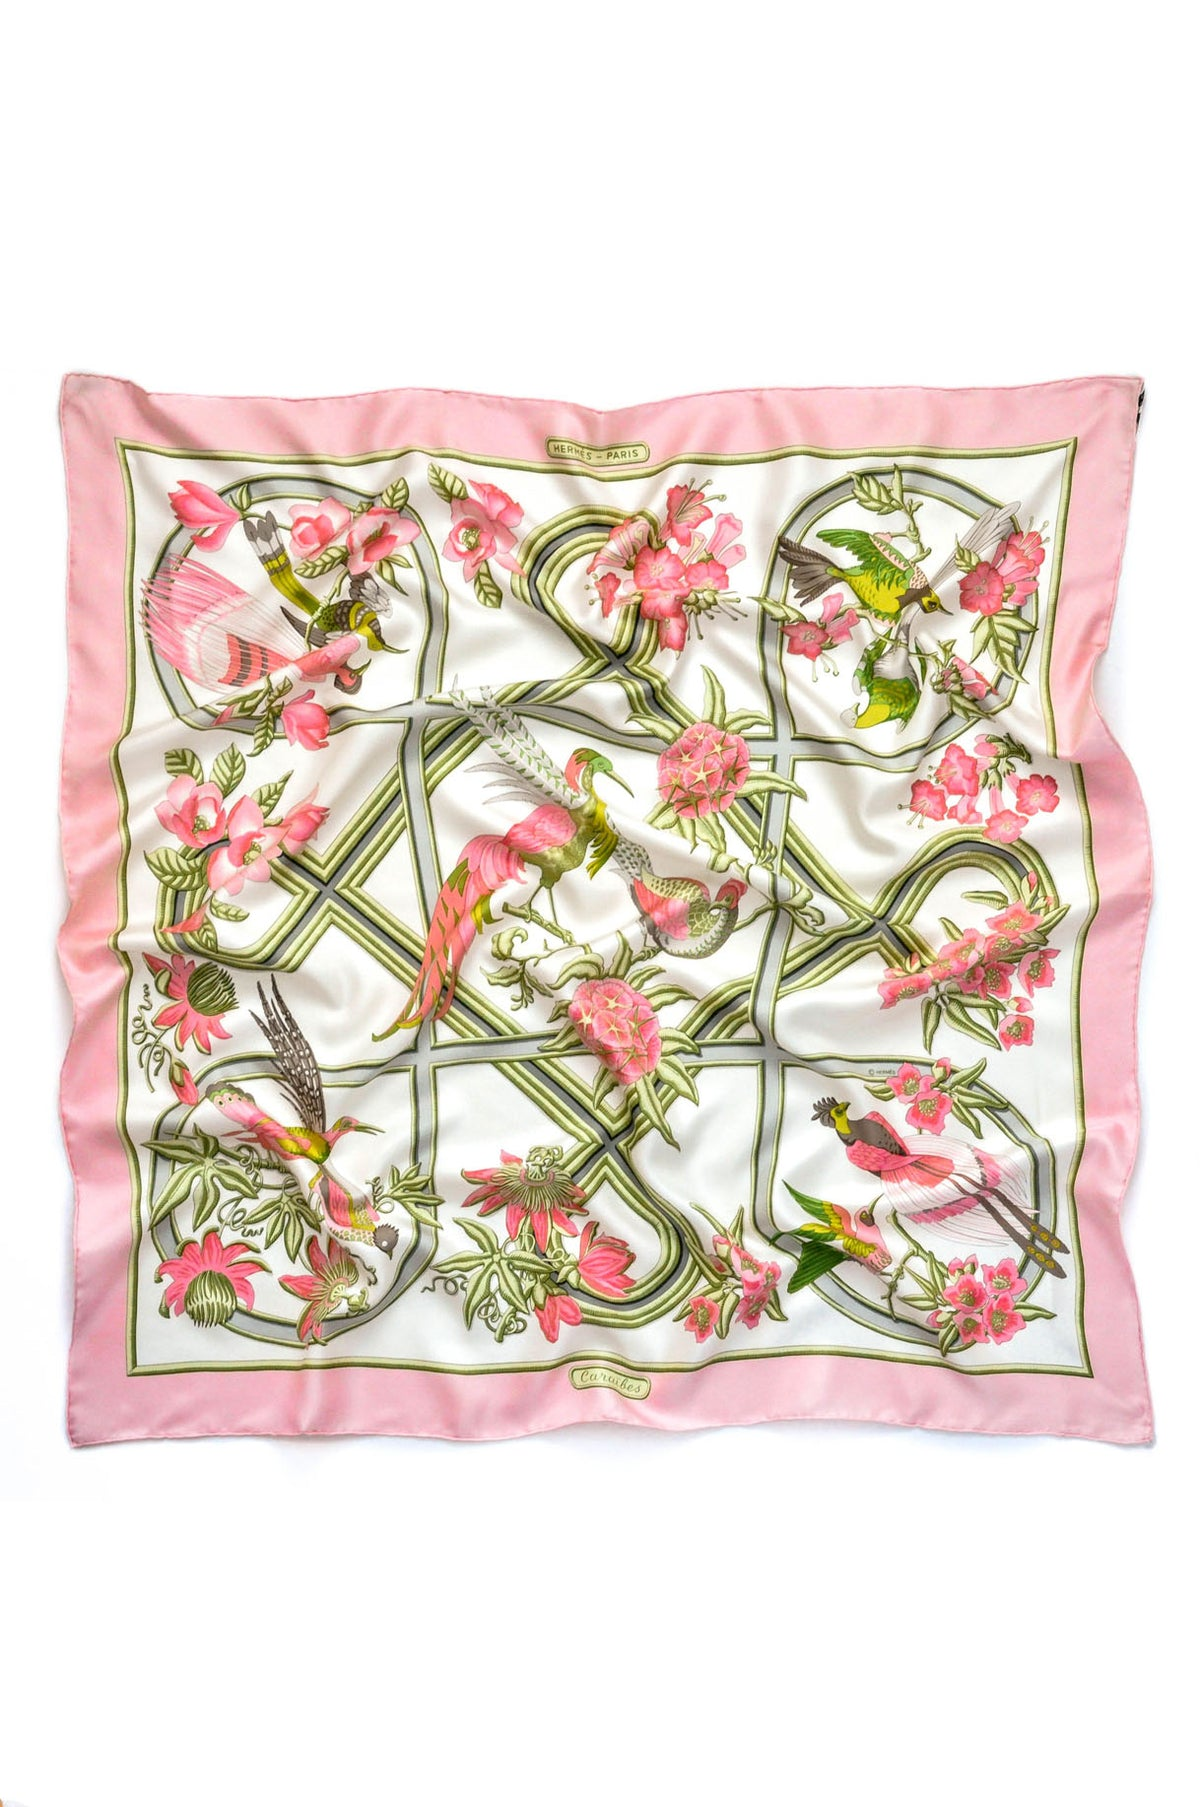 Vintage Hermès Caraibes Scarf from sweet and spark